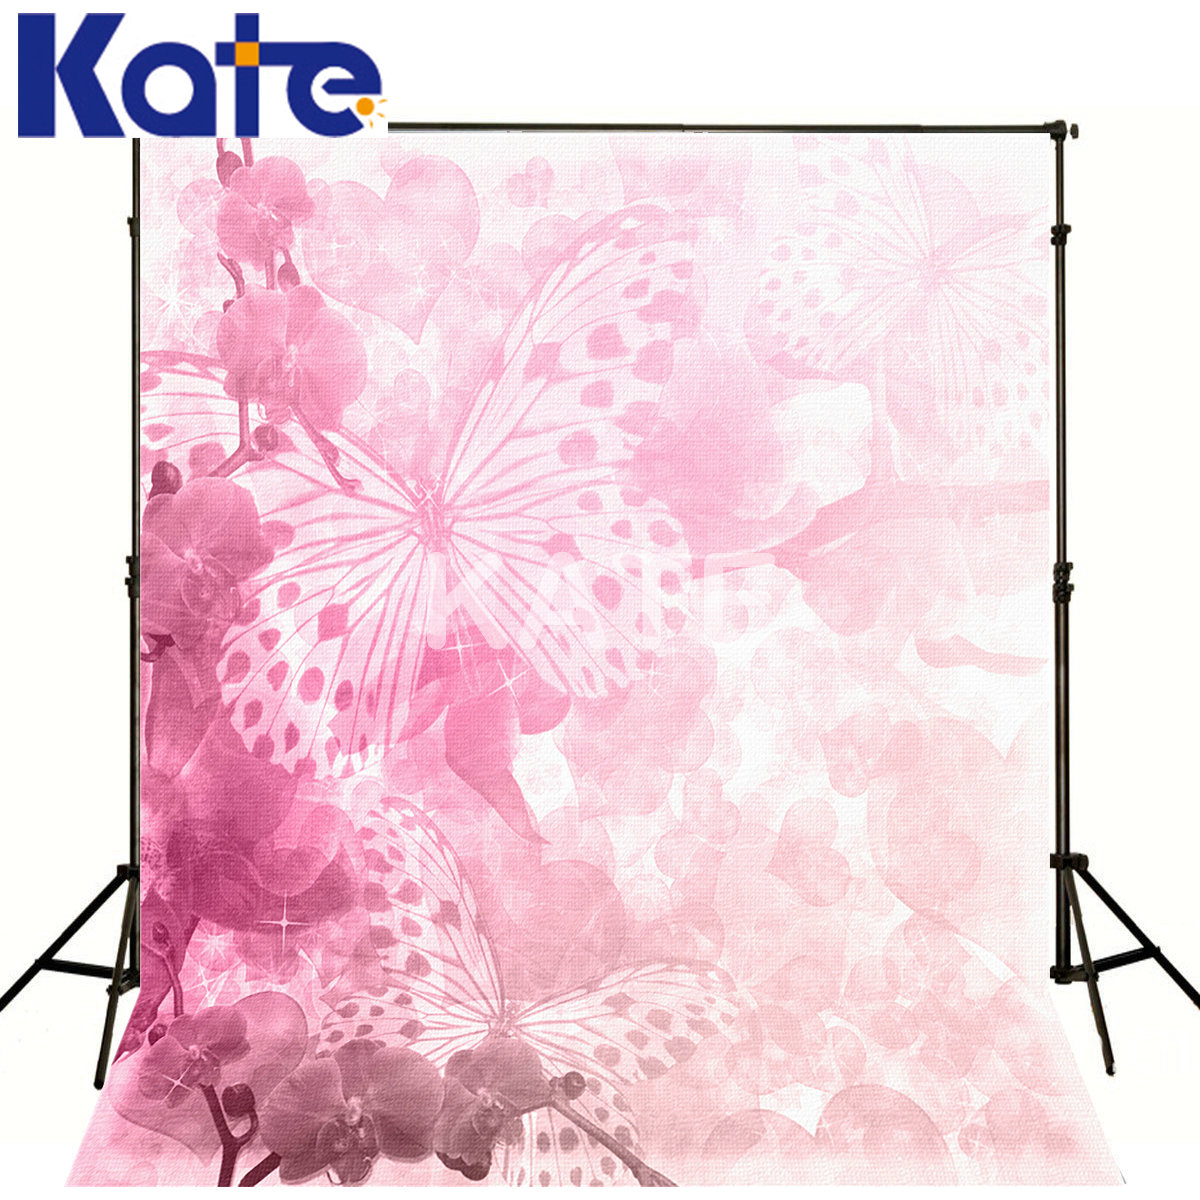 Kate Digital Printing Photo Studio Backdrop Pink Background Pink Flower Butterfly Kate Photo Studio Props Baby kate photo background scenery